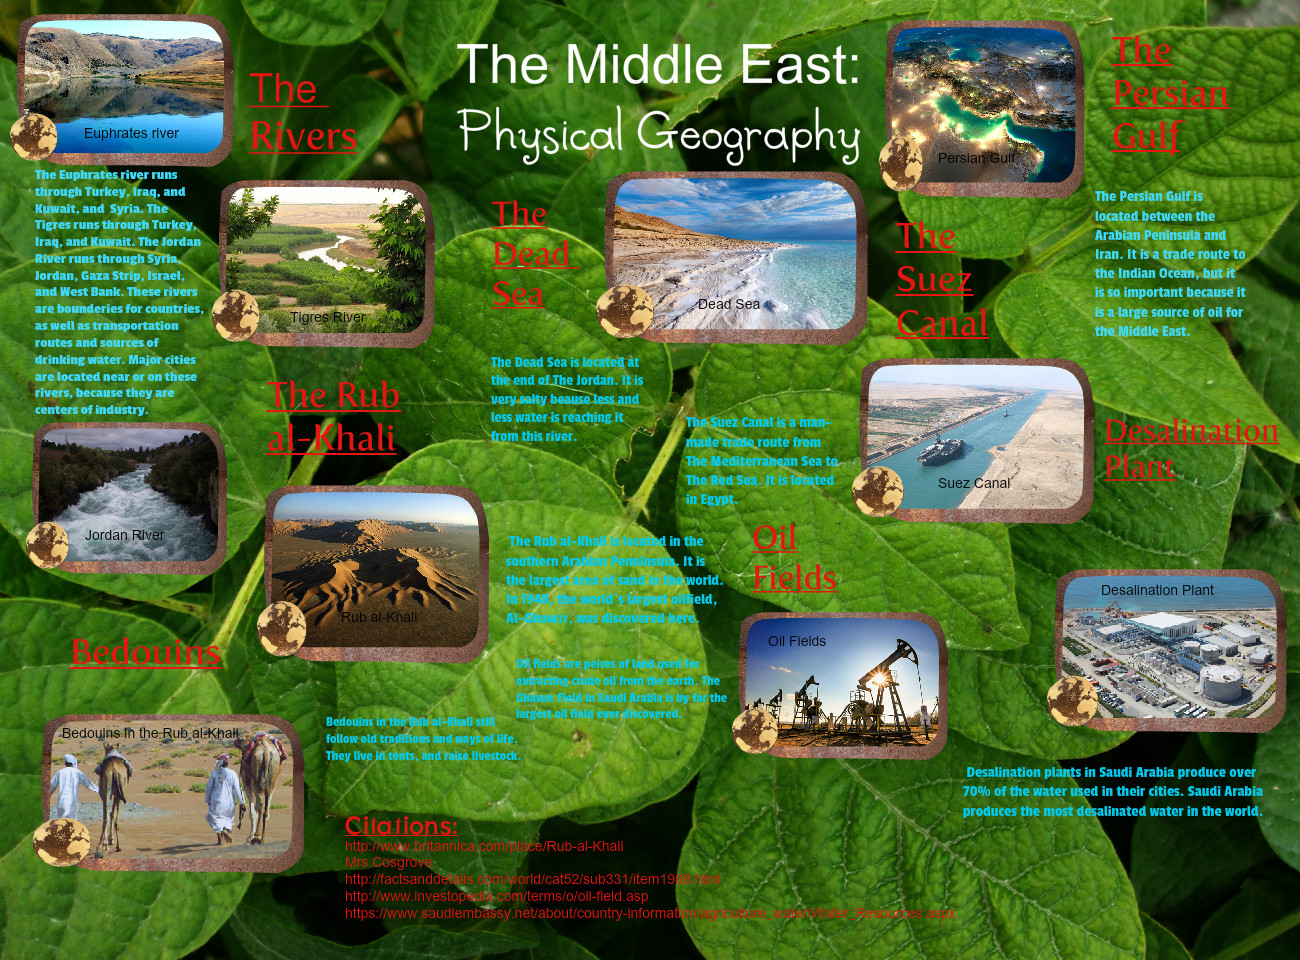 The Middle East: Physical Geography